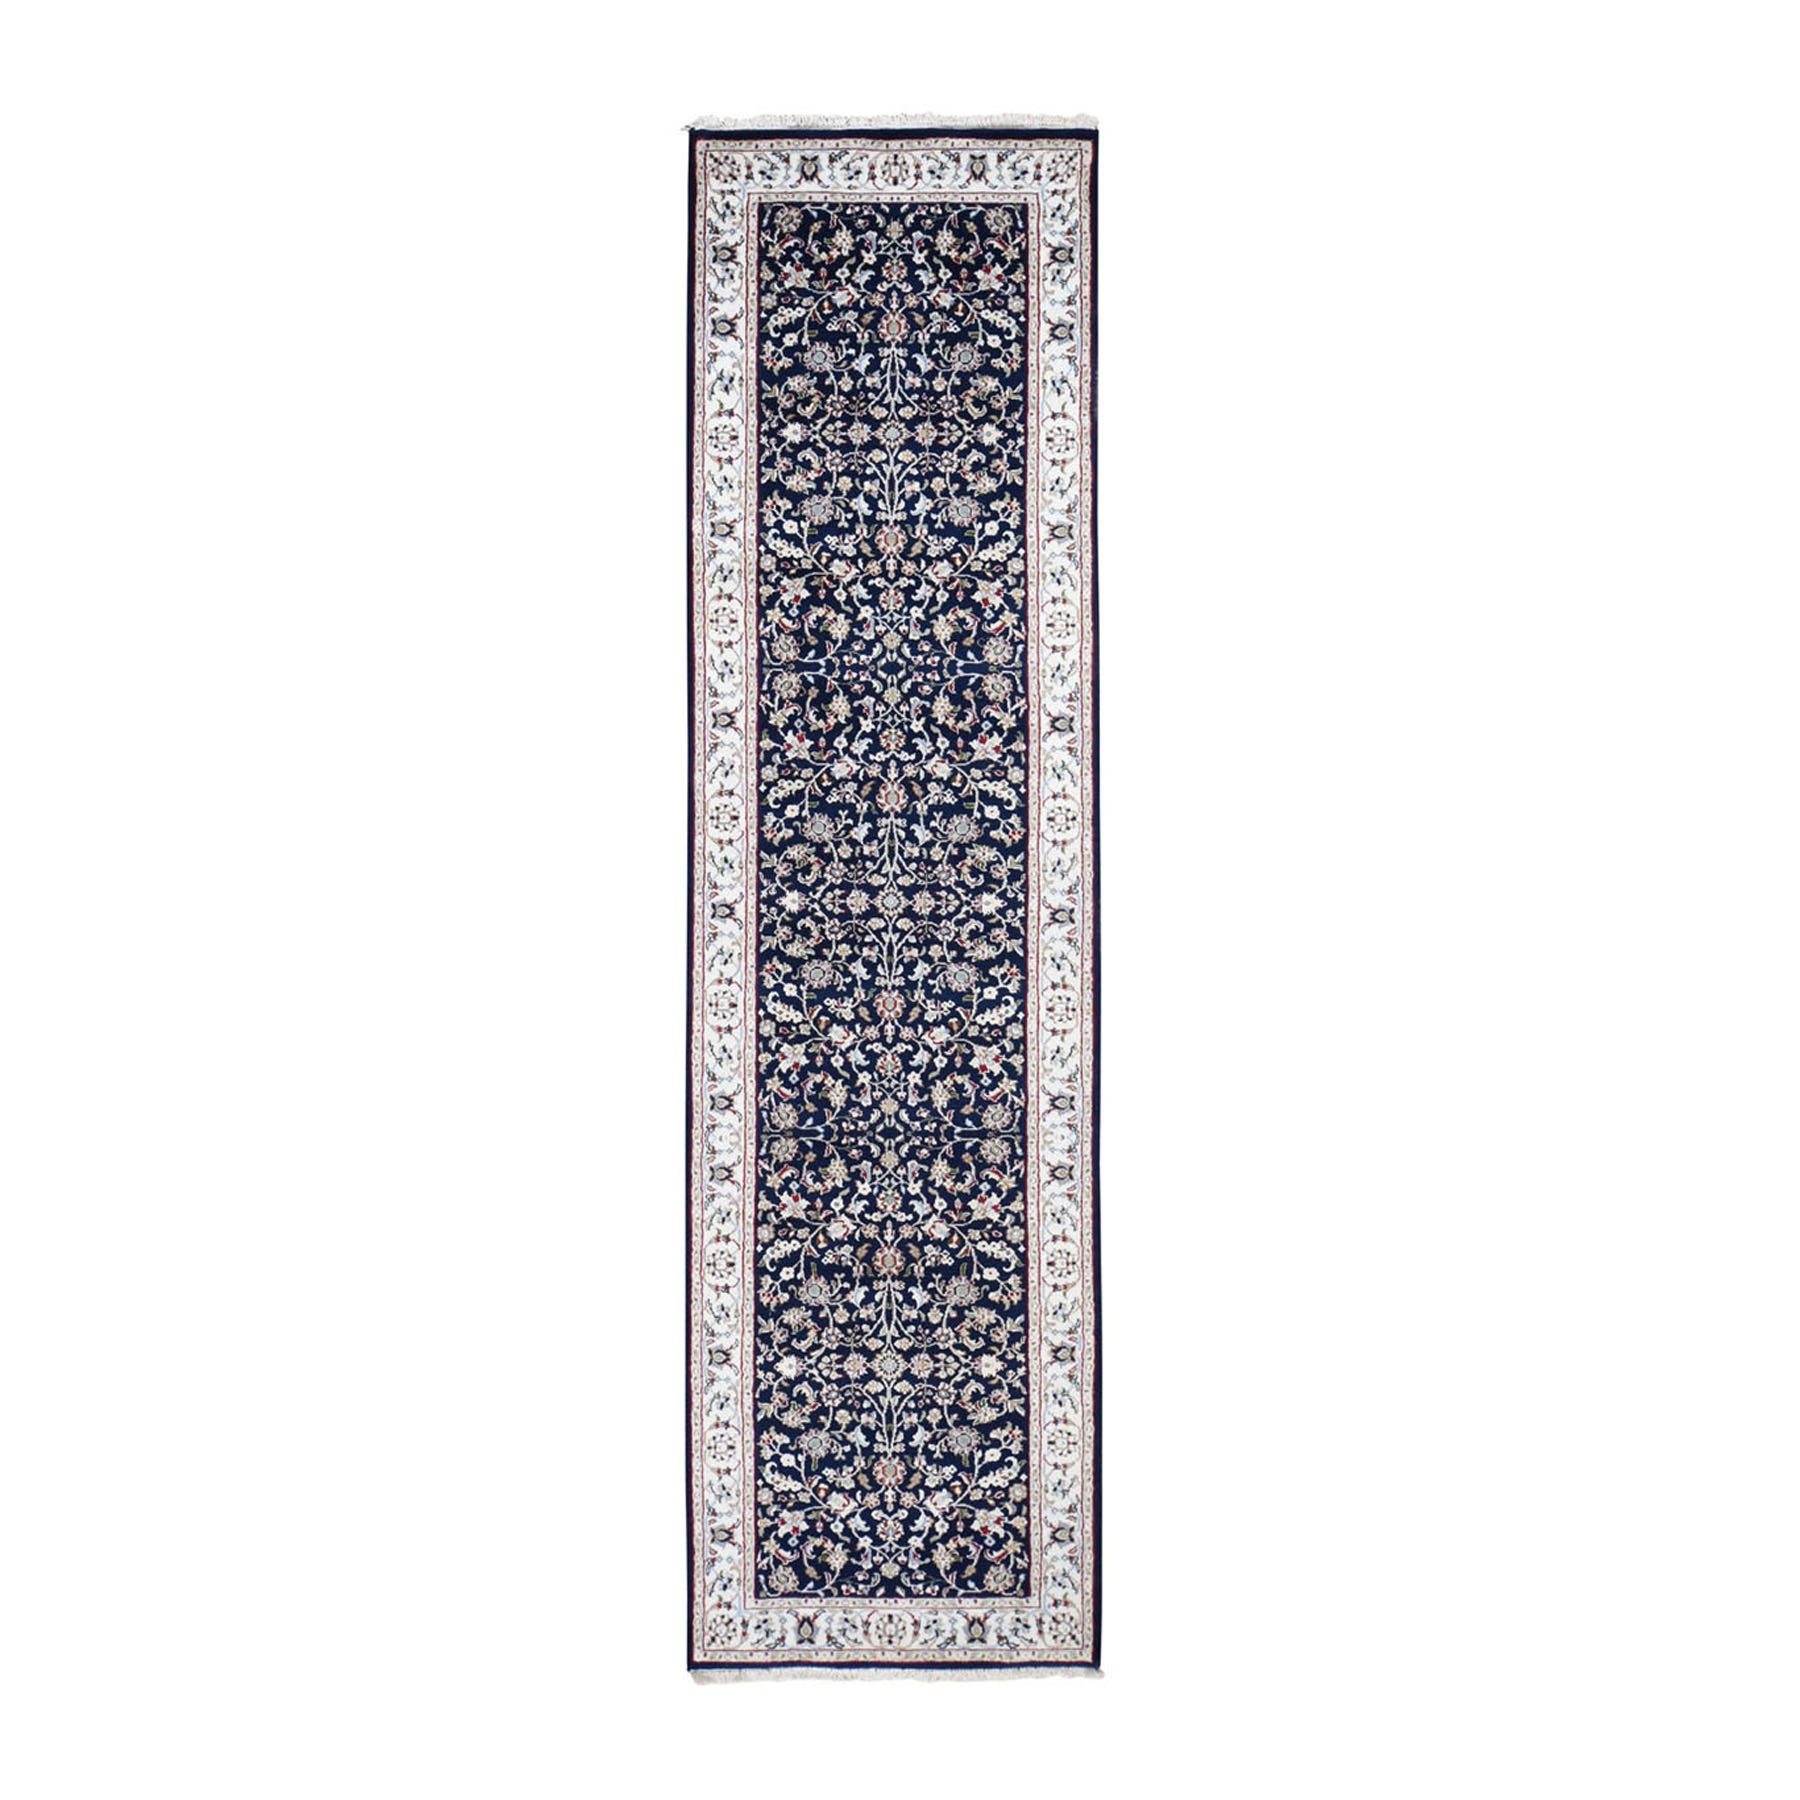 "2'8""x10' Navy Blue Runner Nain Wool And Silk All Over Design 250 KPSI Hand Woven Oriental Rug"